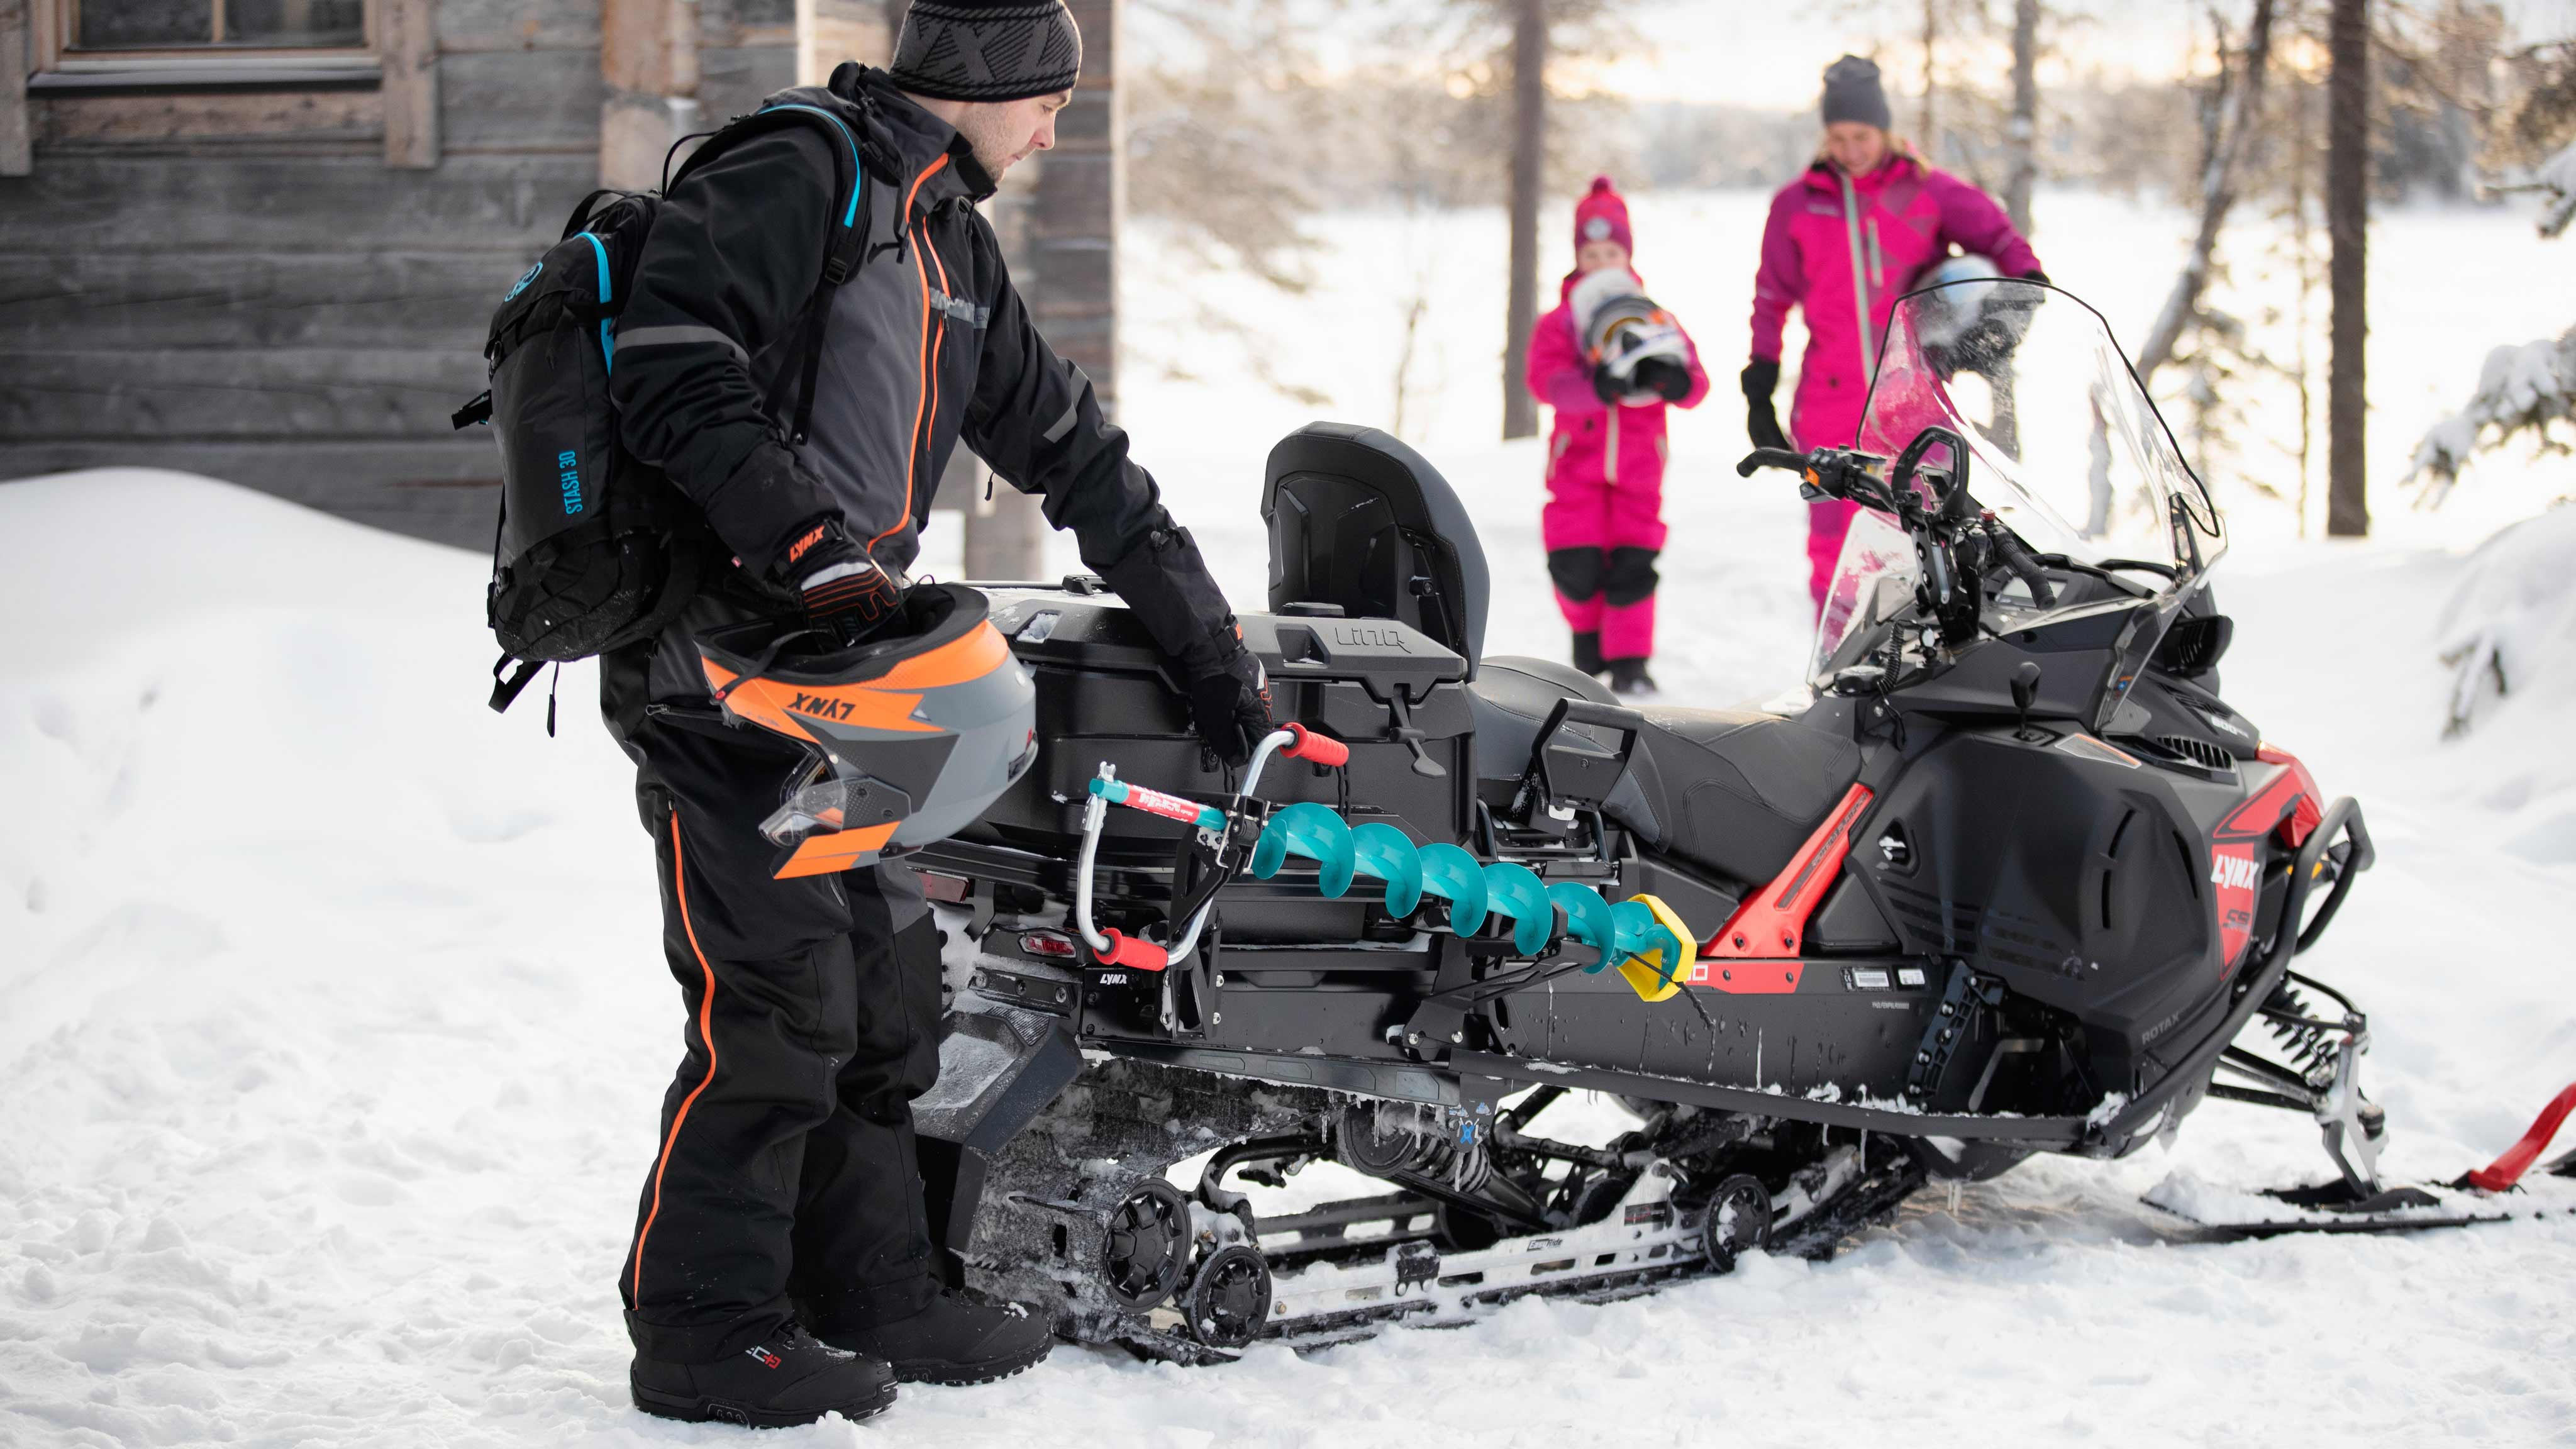 Family preparing to ride a Lynx 59 Ranger snowmobile